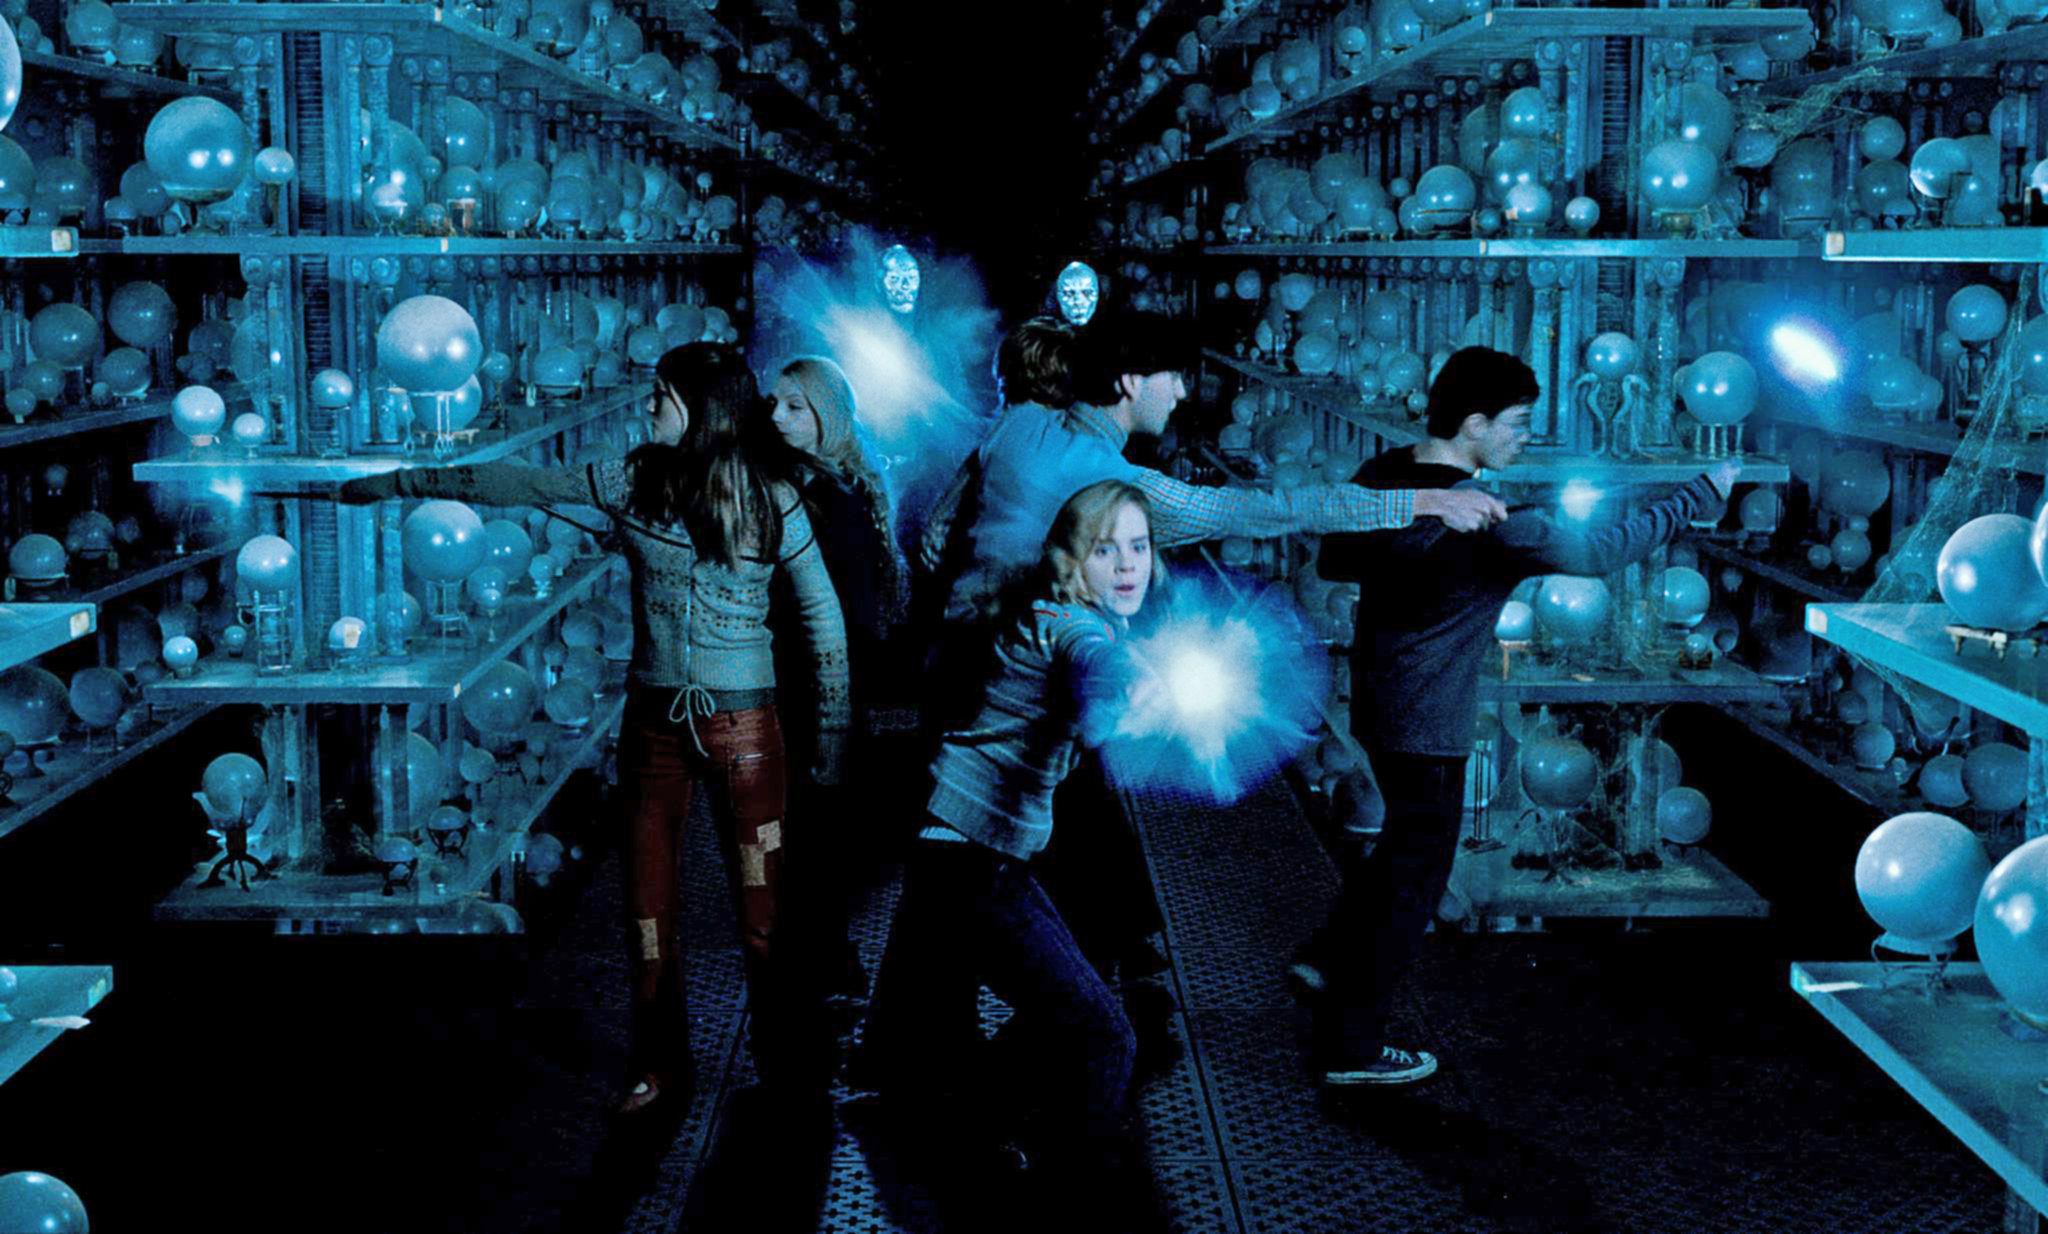 Dumbledore's Army battling the Death Eaters in the Room of Prophecy